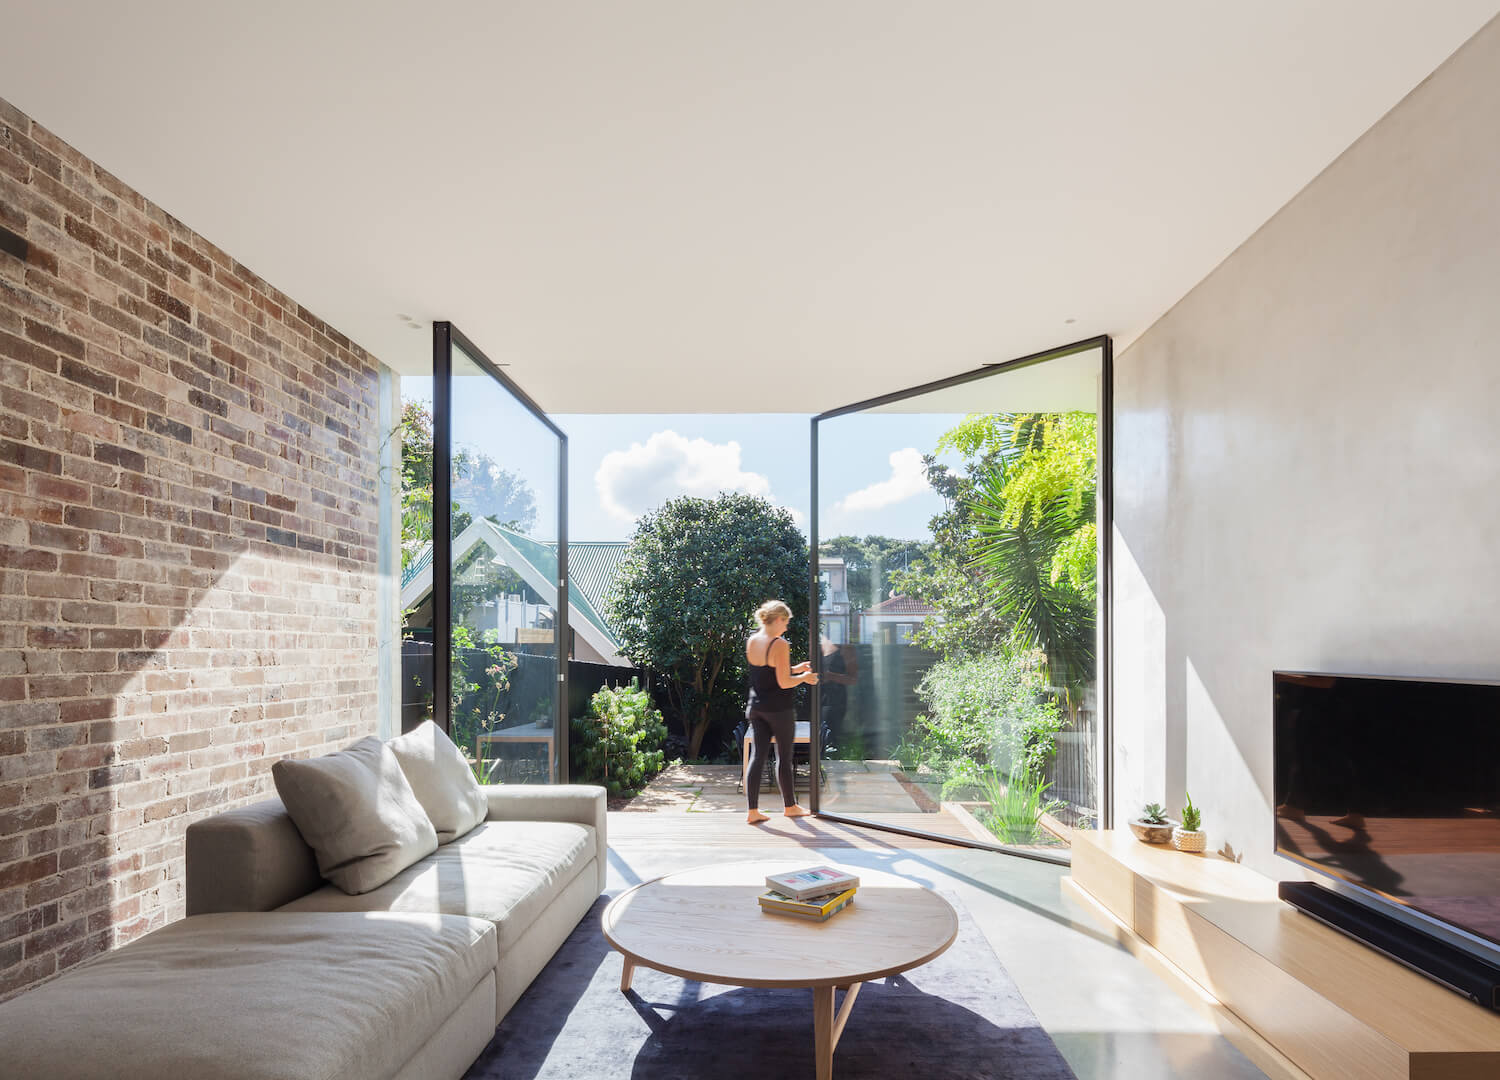 est living interiors d house marston architects 5